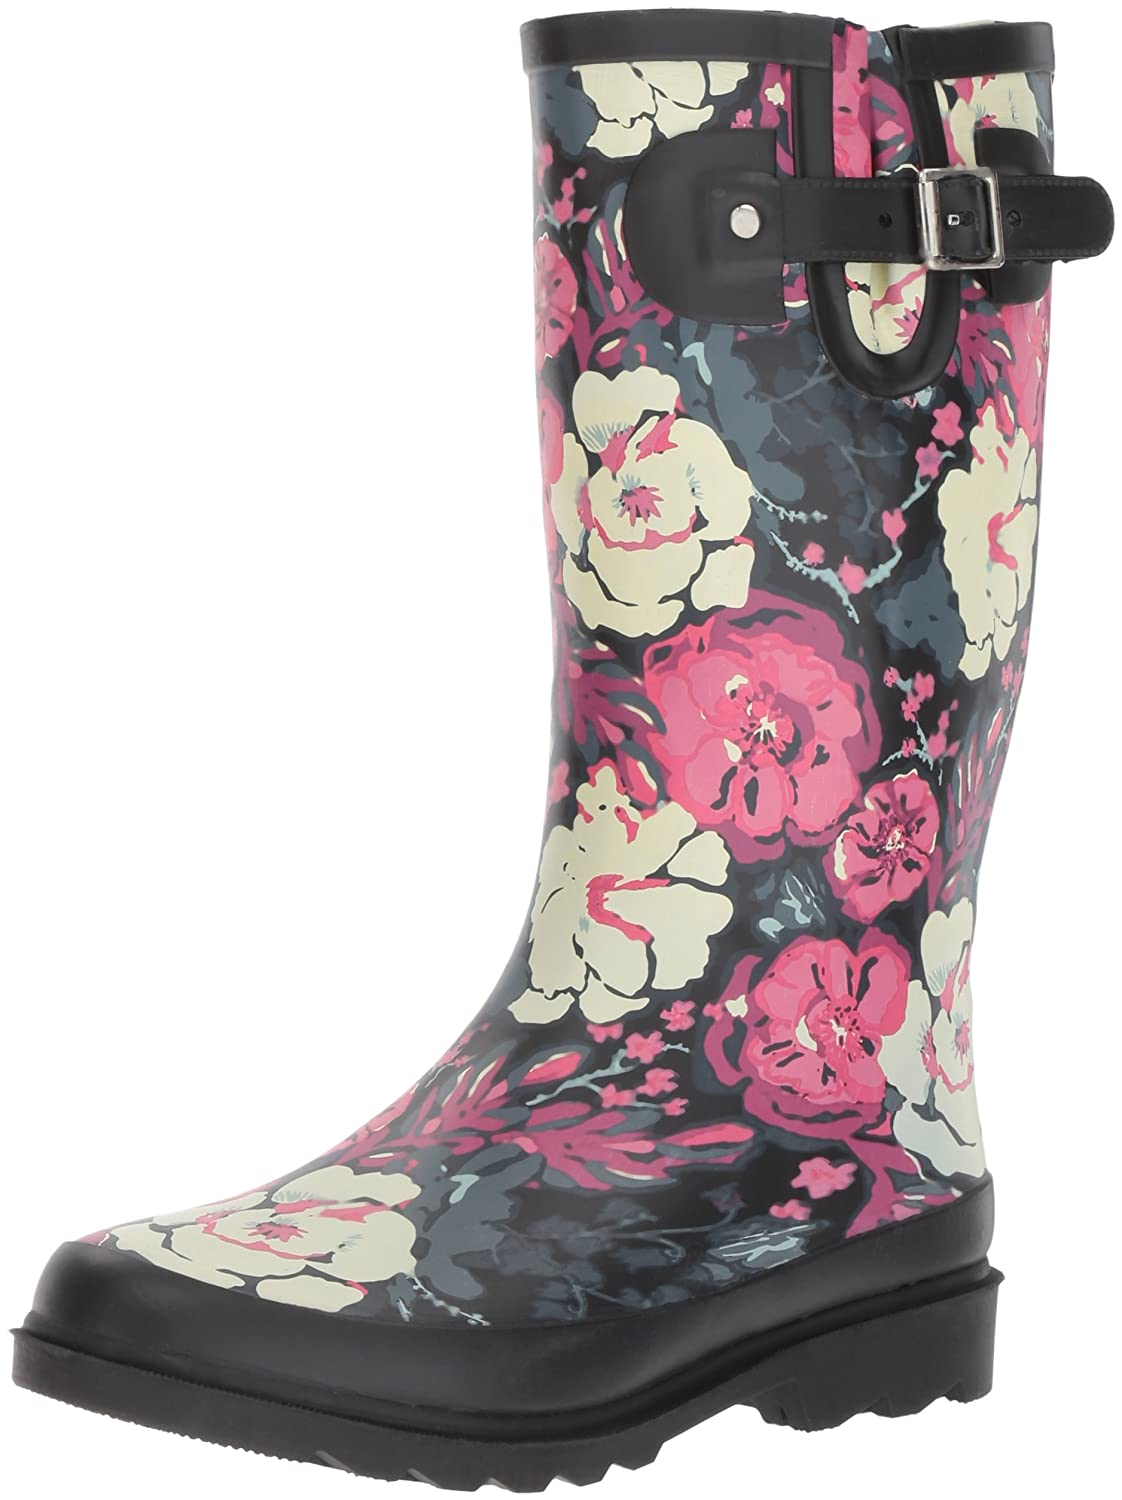 Western Chief Women's Printed Tall Rain Boot B06XC9SP7Z 7 B(M) US|Florally